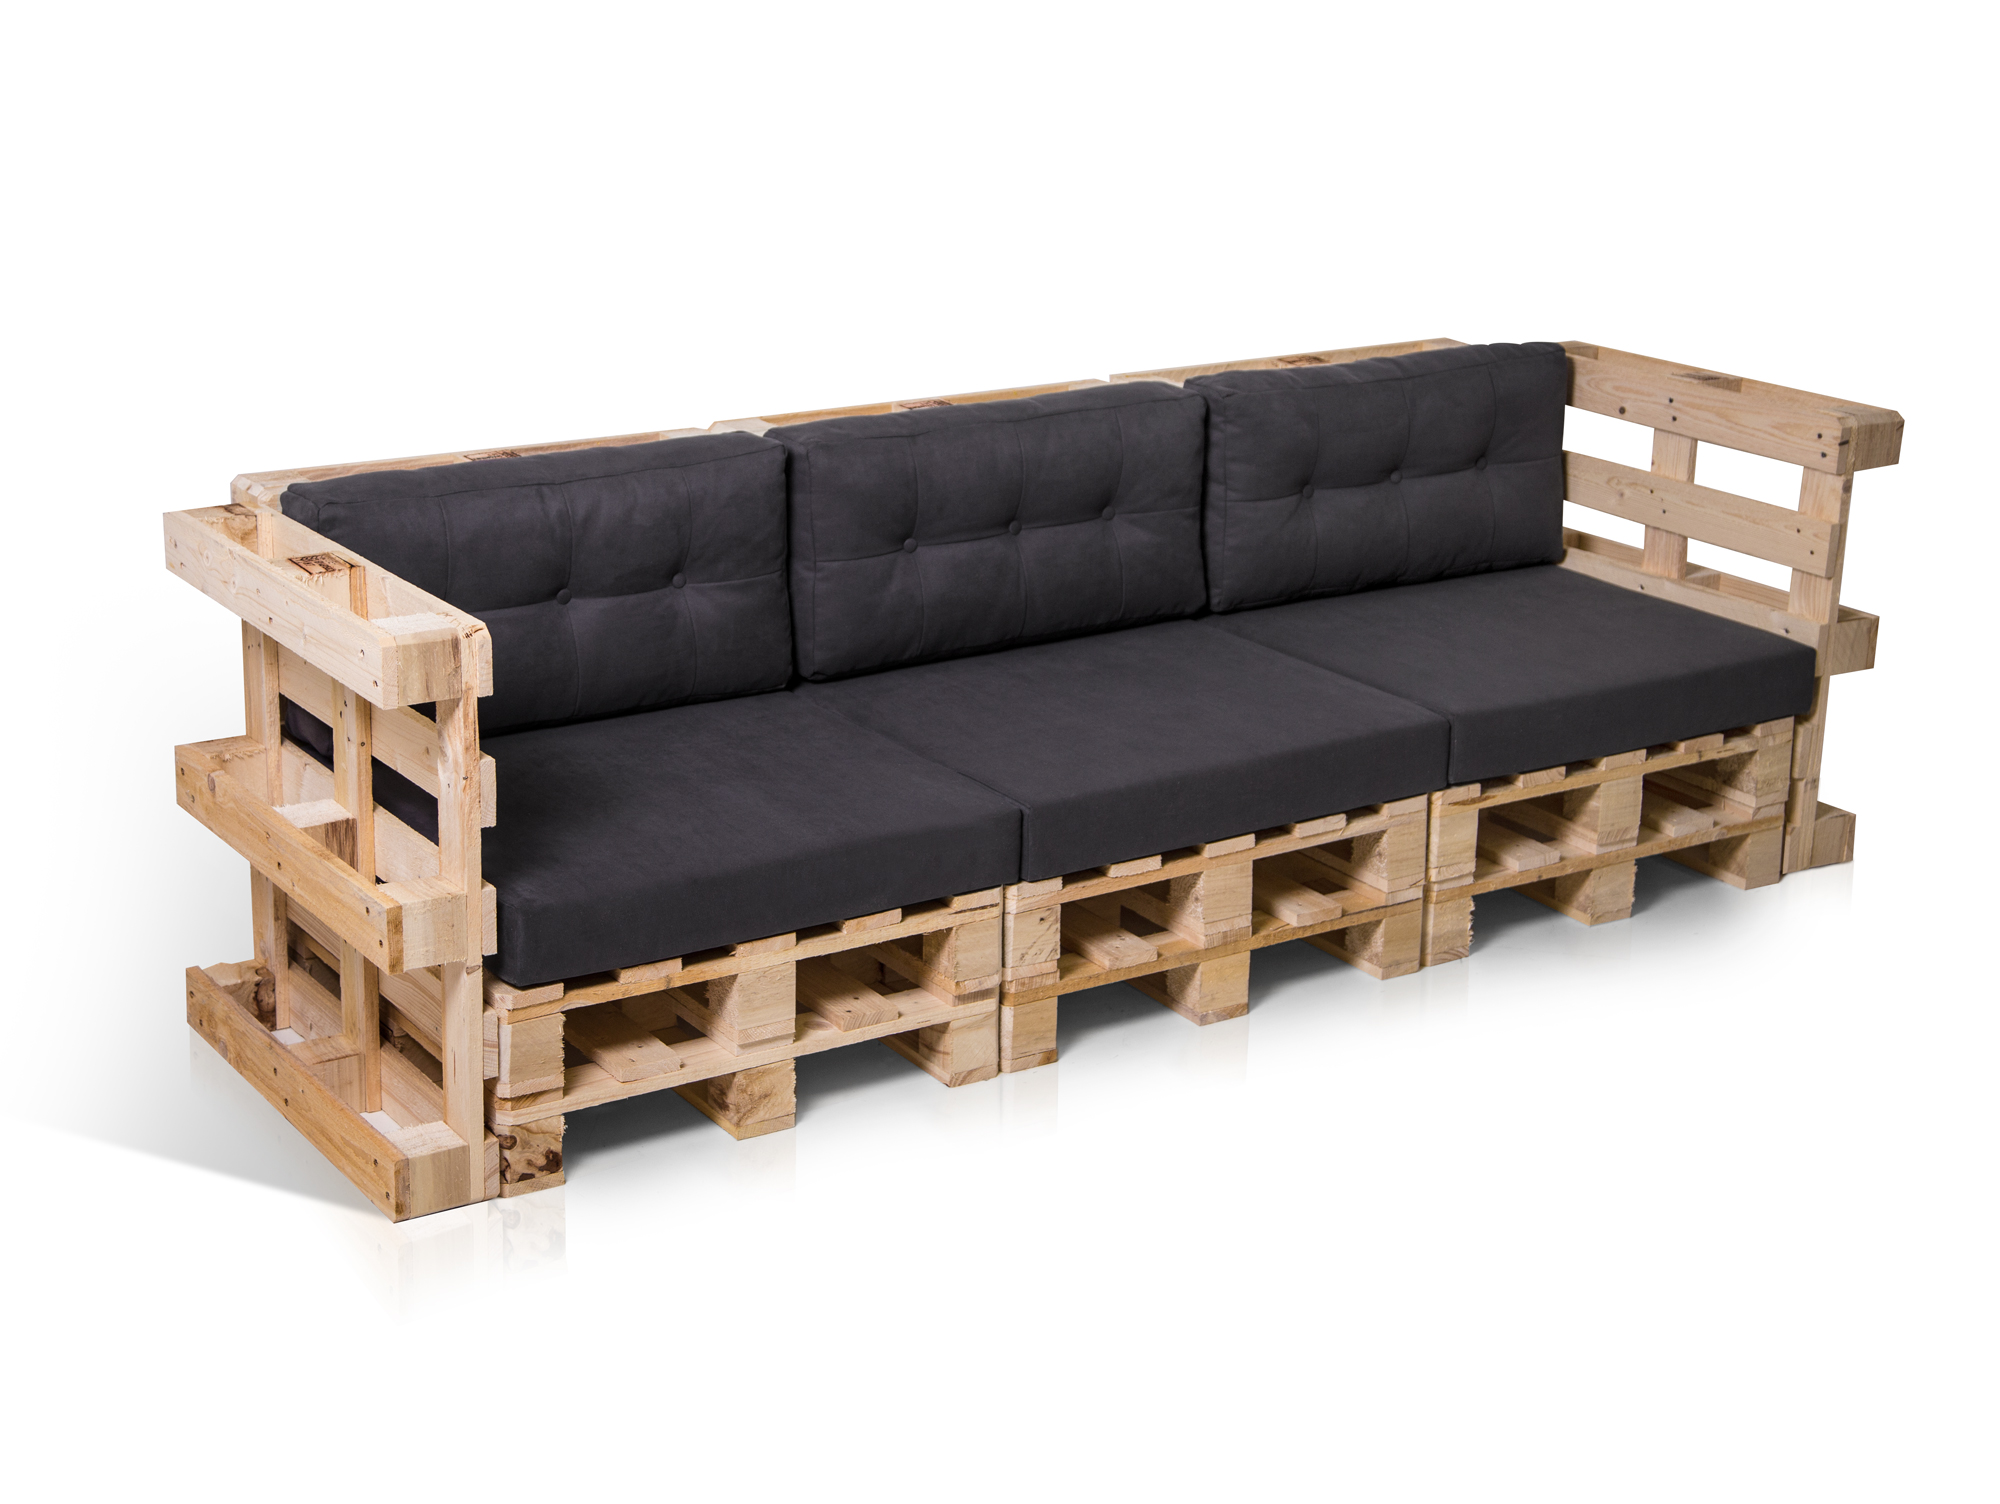 sofa aus paletten groes diy sofa aus paletten mit schwarz bezogenen matratzen mbel paletten. Black Bedroom Furniture Sets. Home Design Ideas